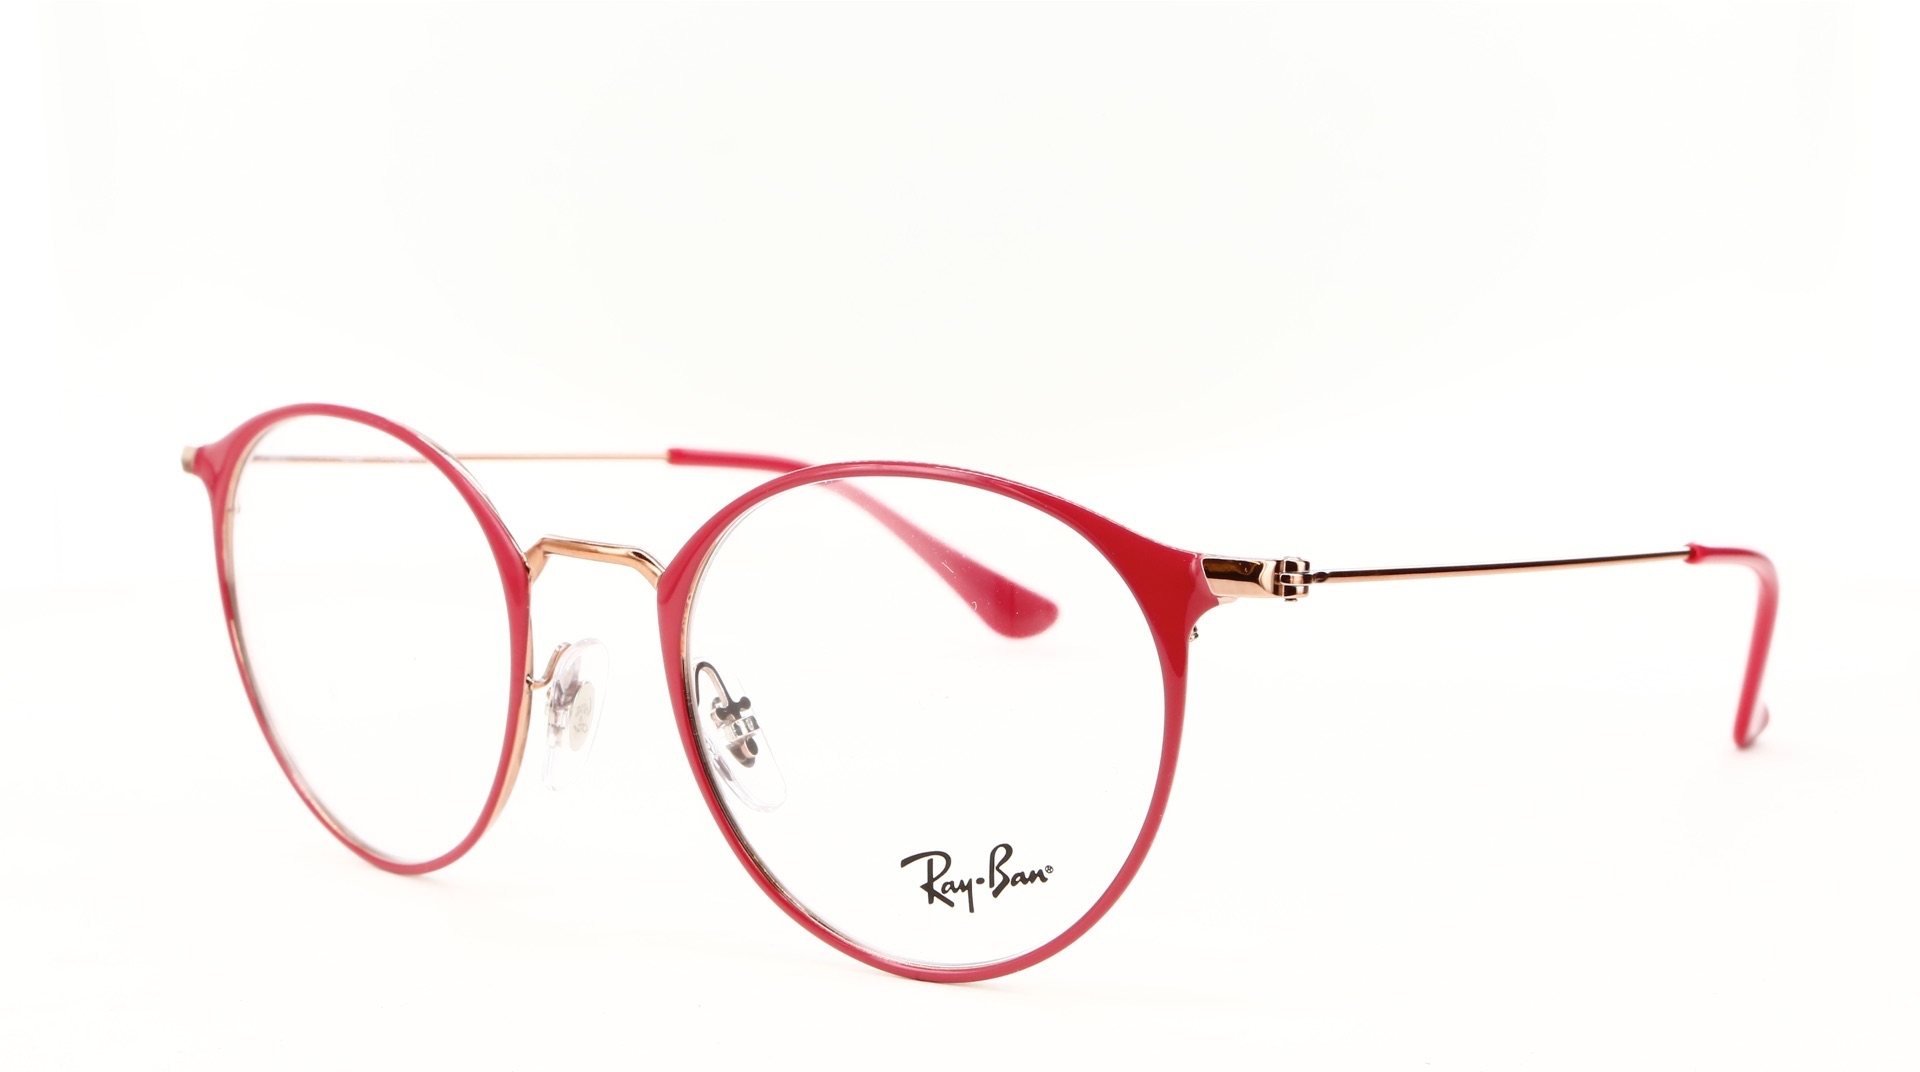 Ray-Ban - ref: 78766